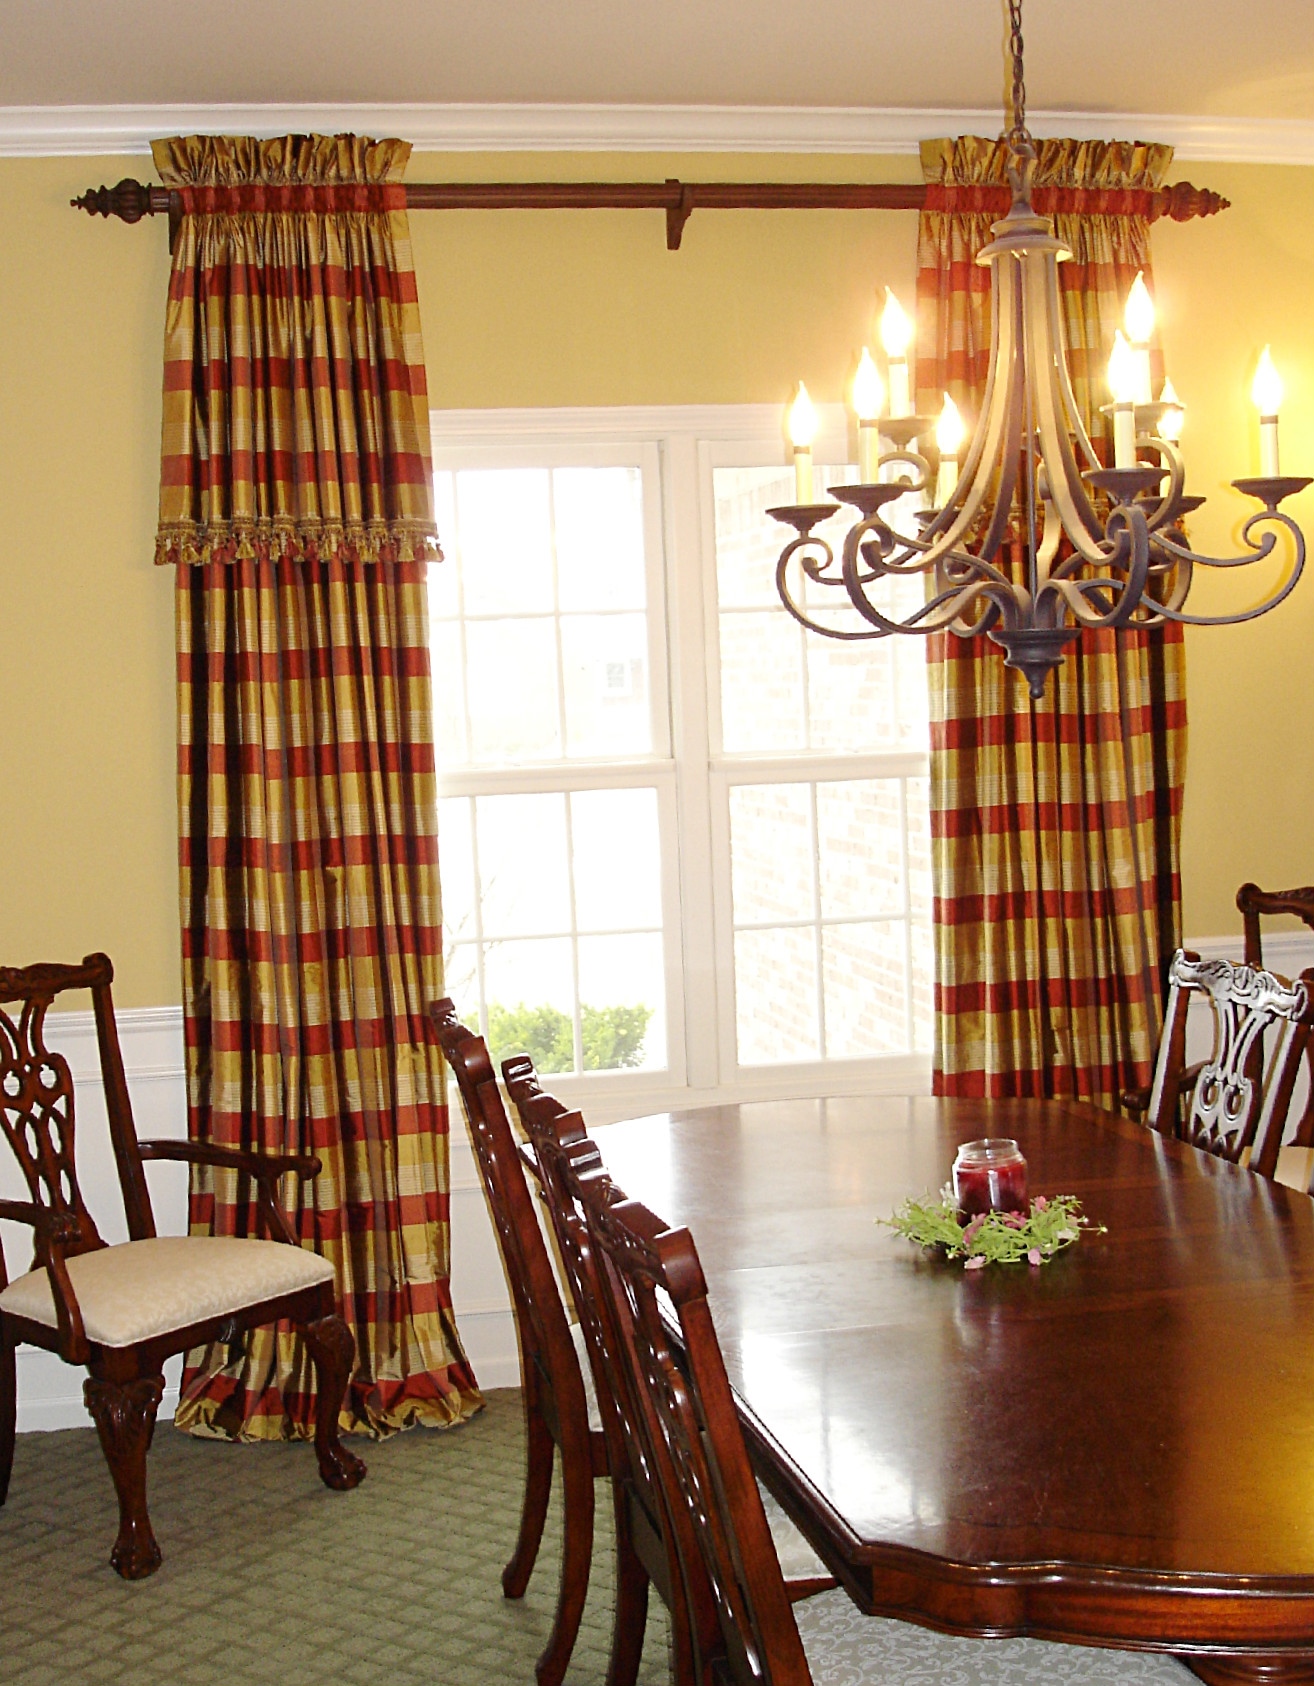 Swag Curtains amp Valances Youll Love  Wayfair